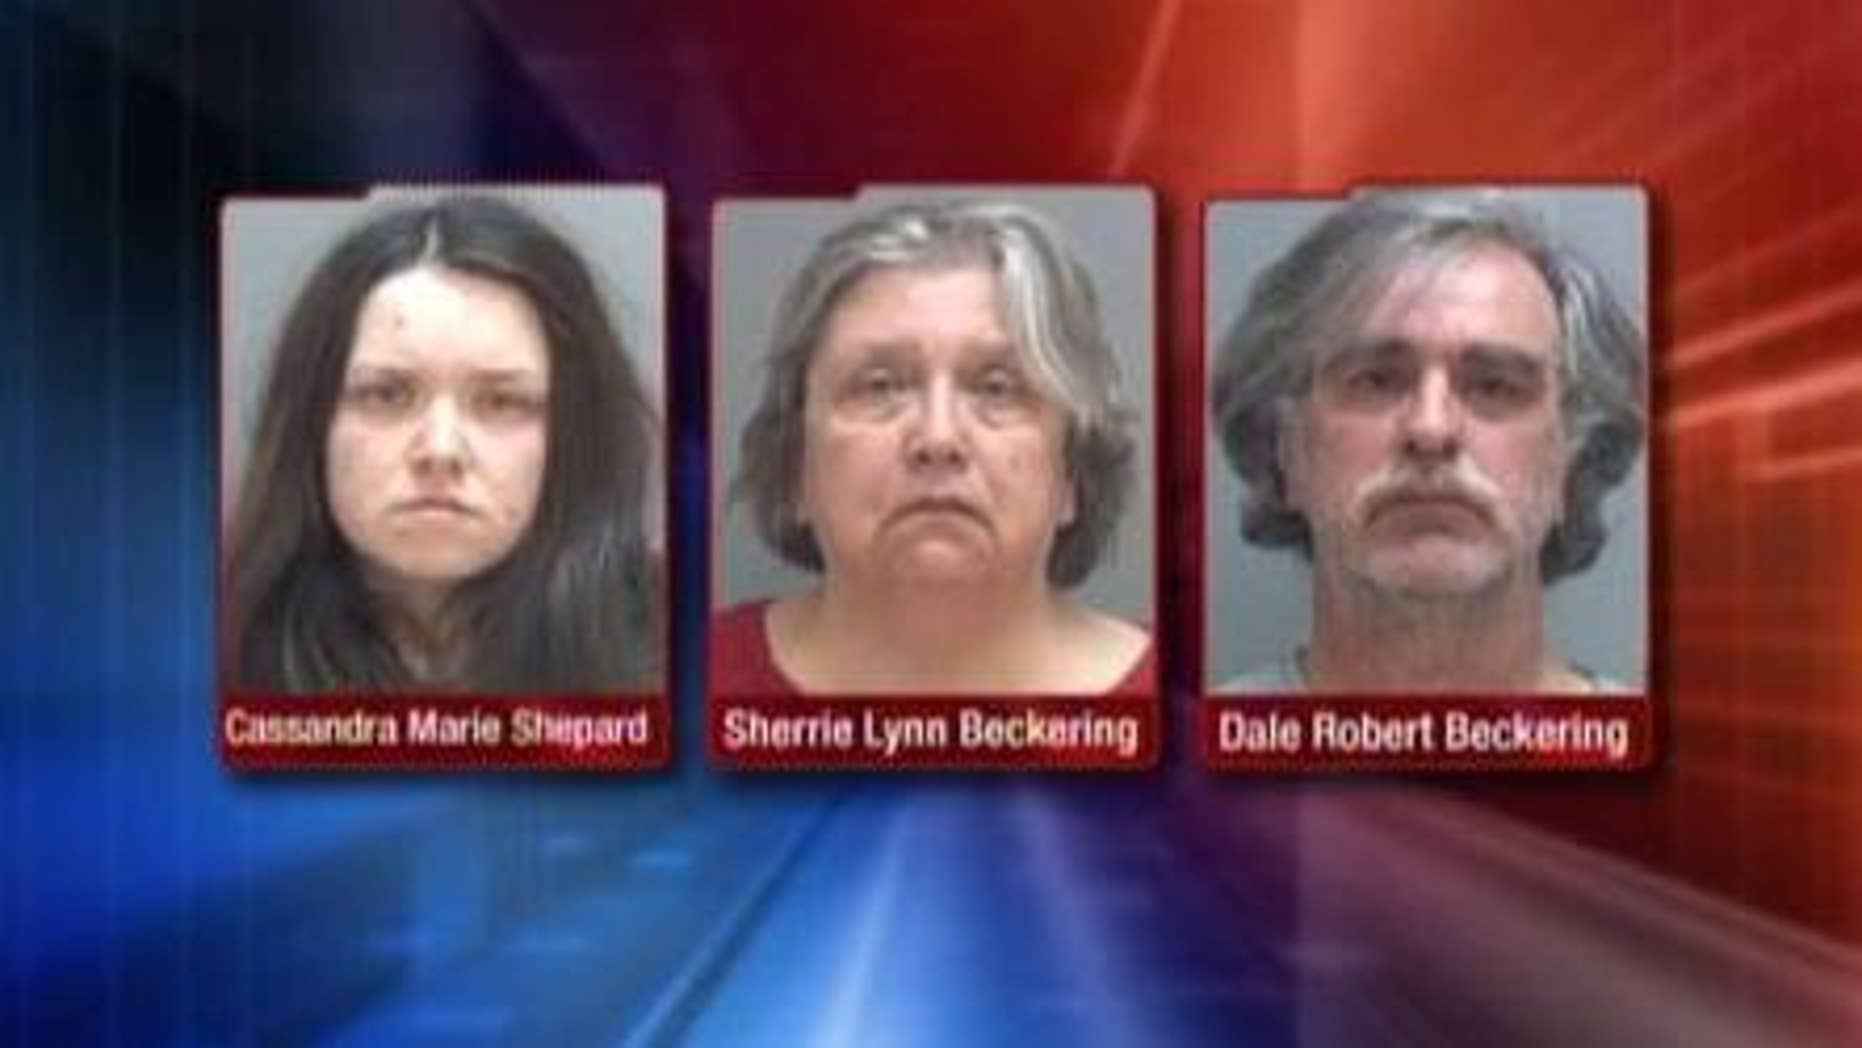 Police have arrested three people in connection to an unusual abuse and murder of a disabled woman in Kearns, Utah.